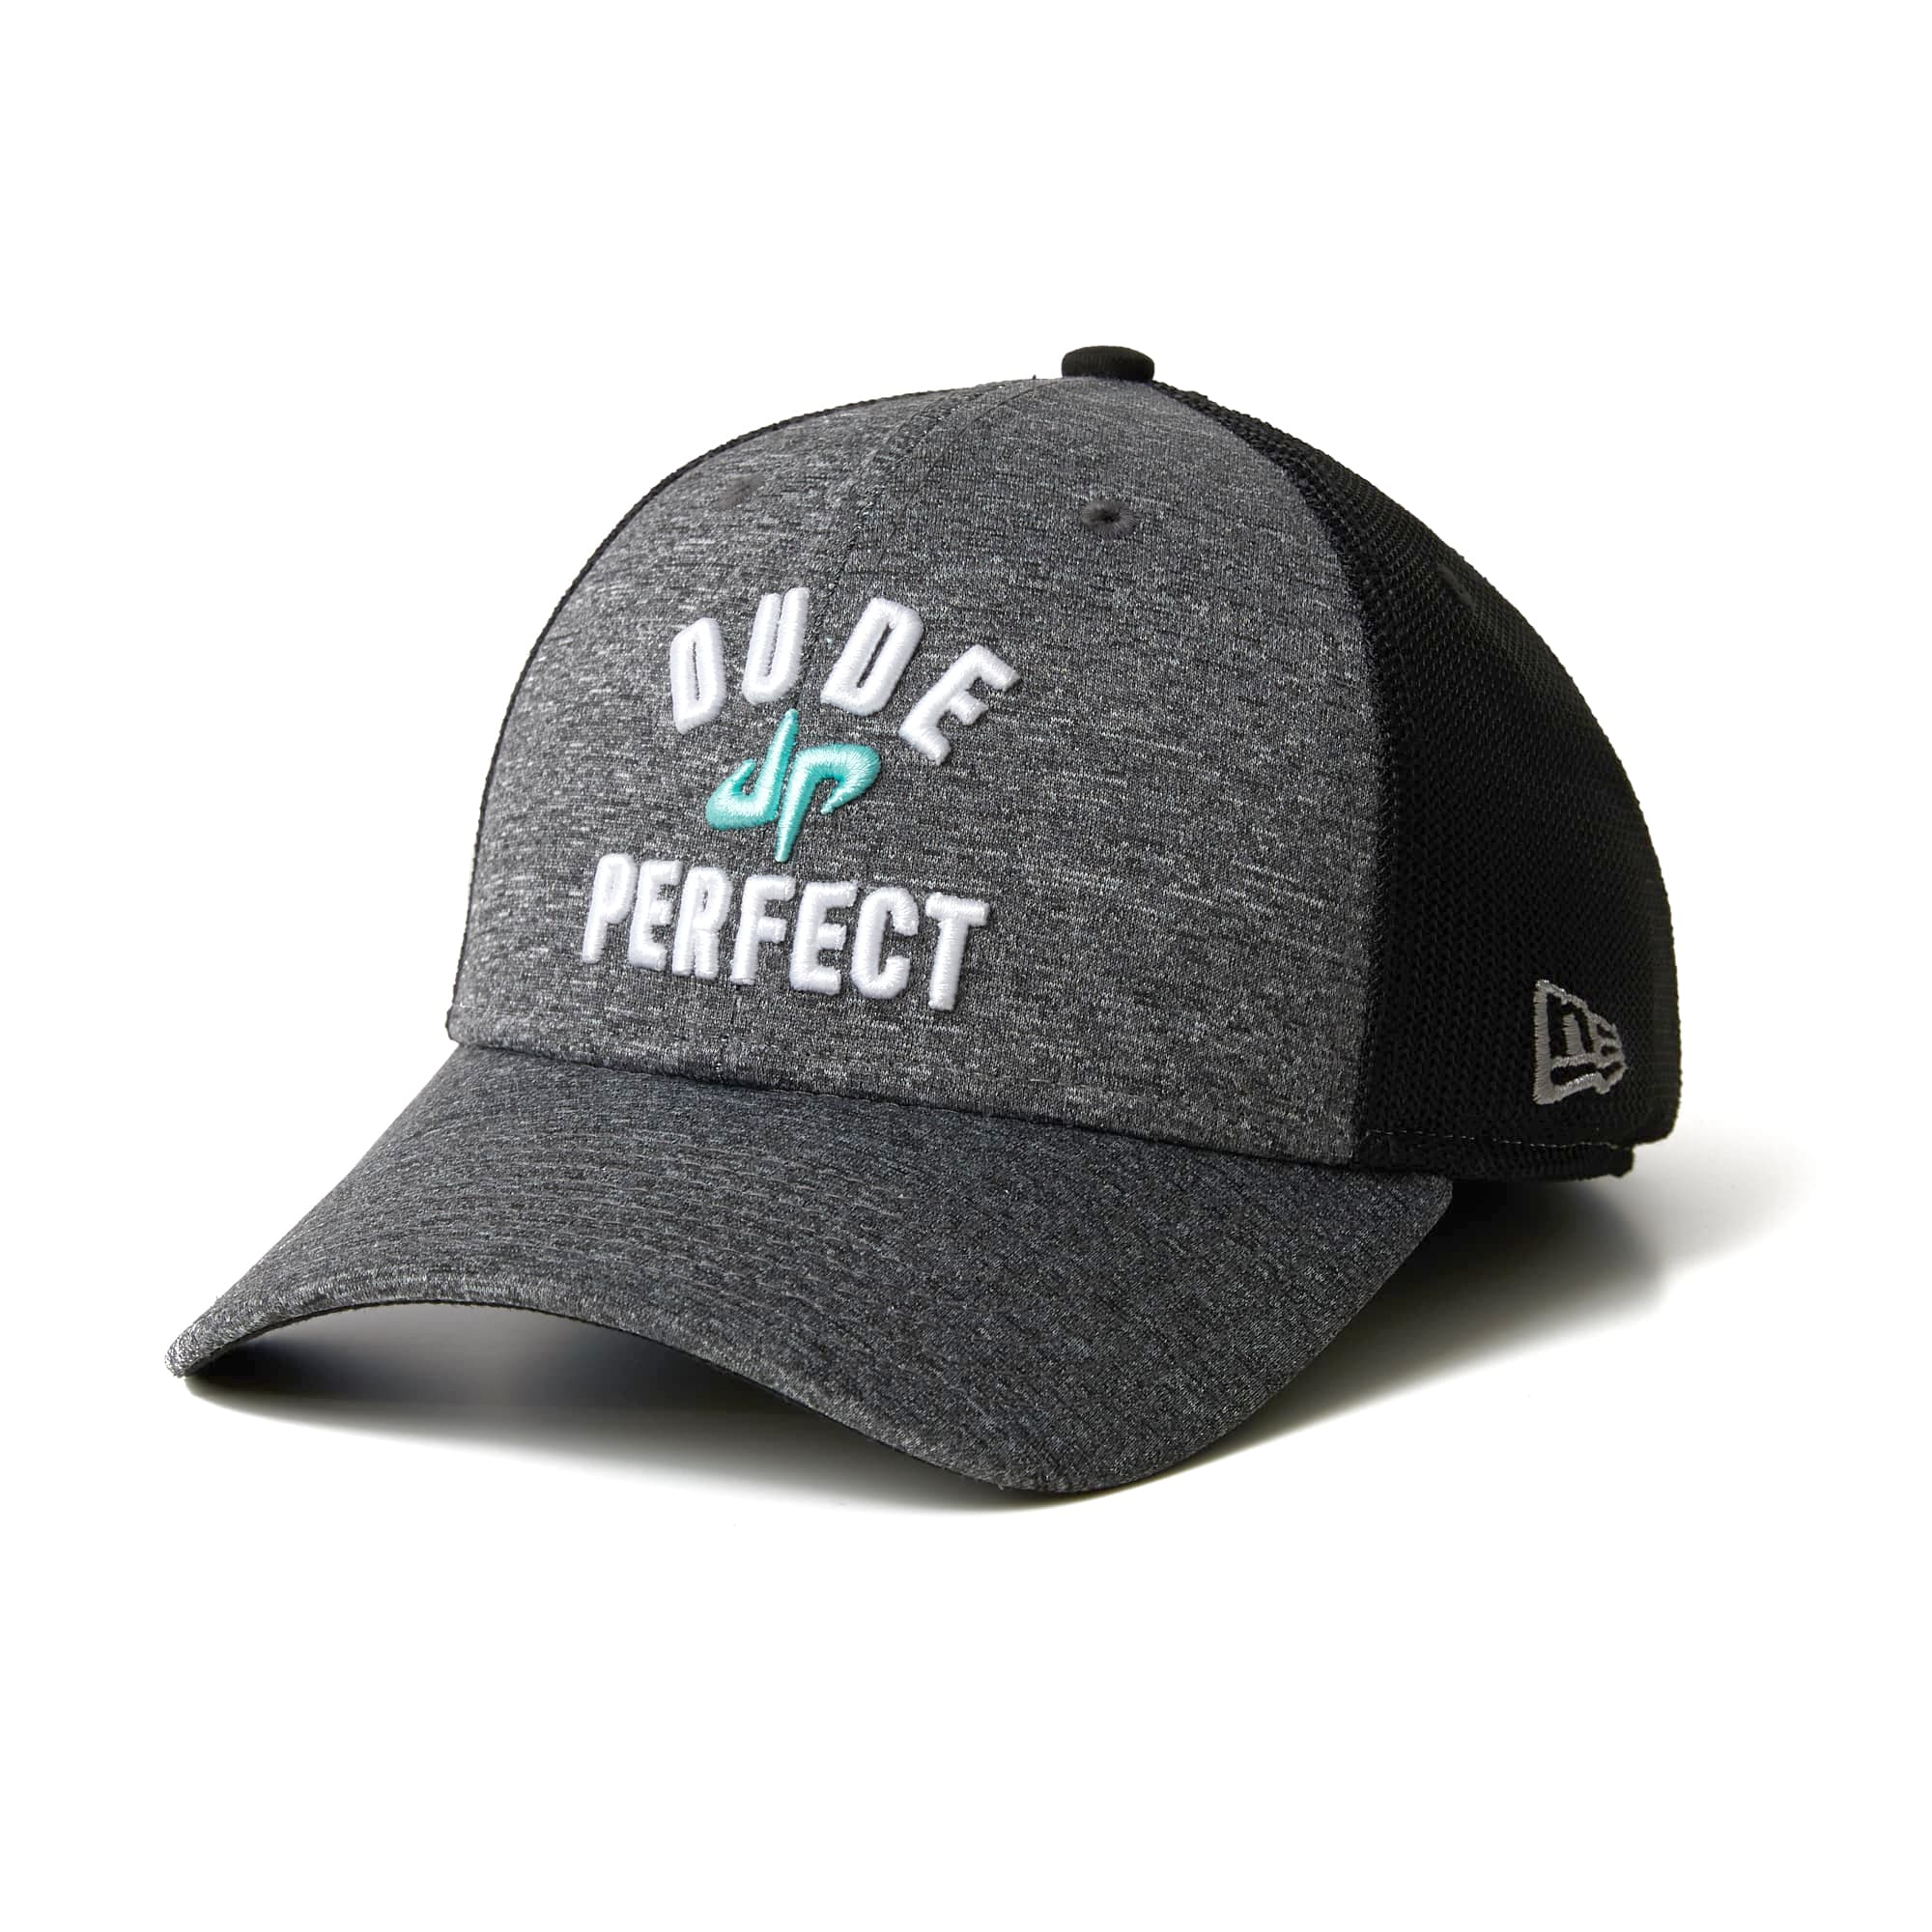 Dude Perfect | Official Storefront | Dude Perfect Official